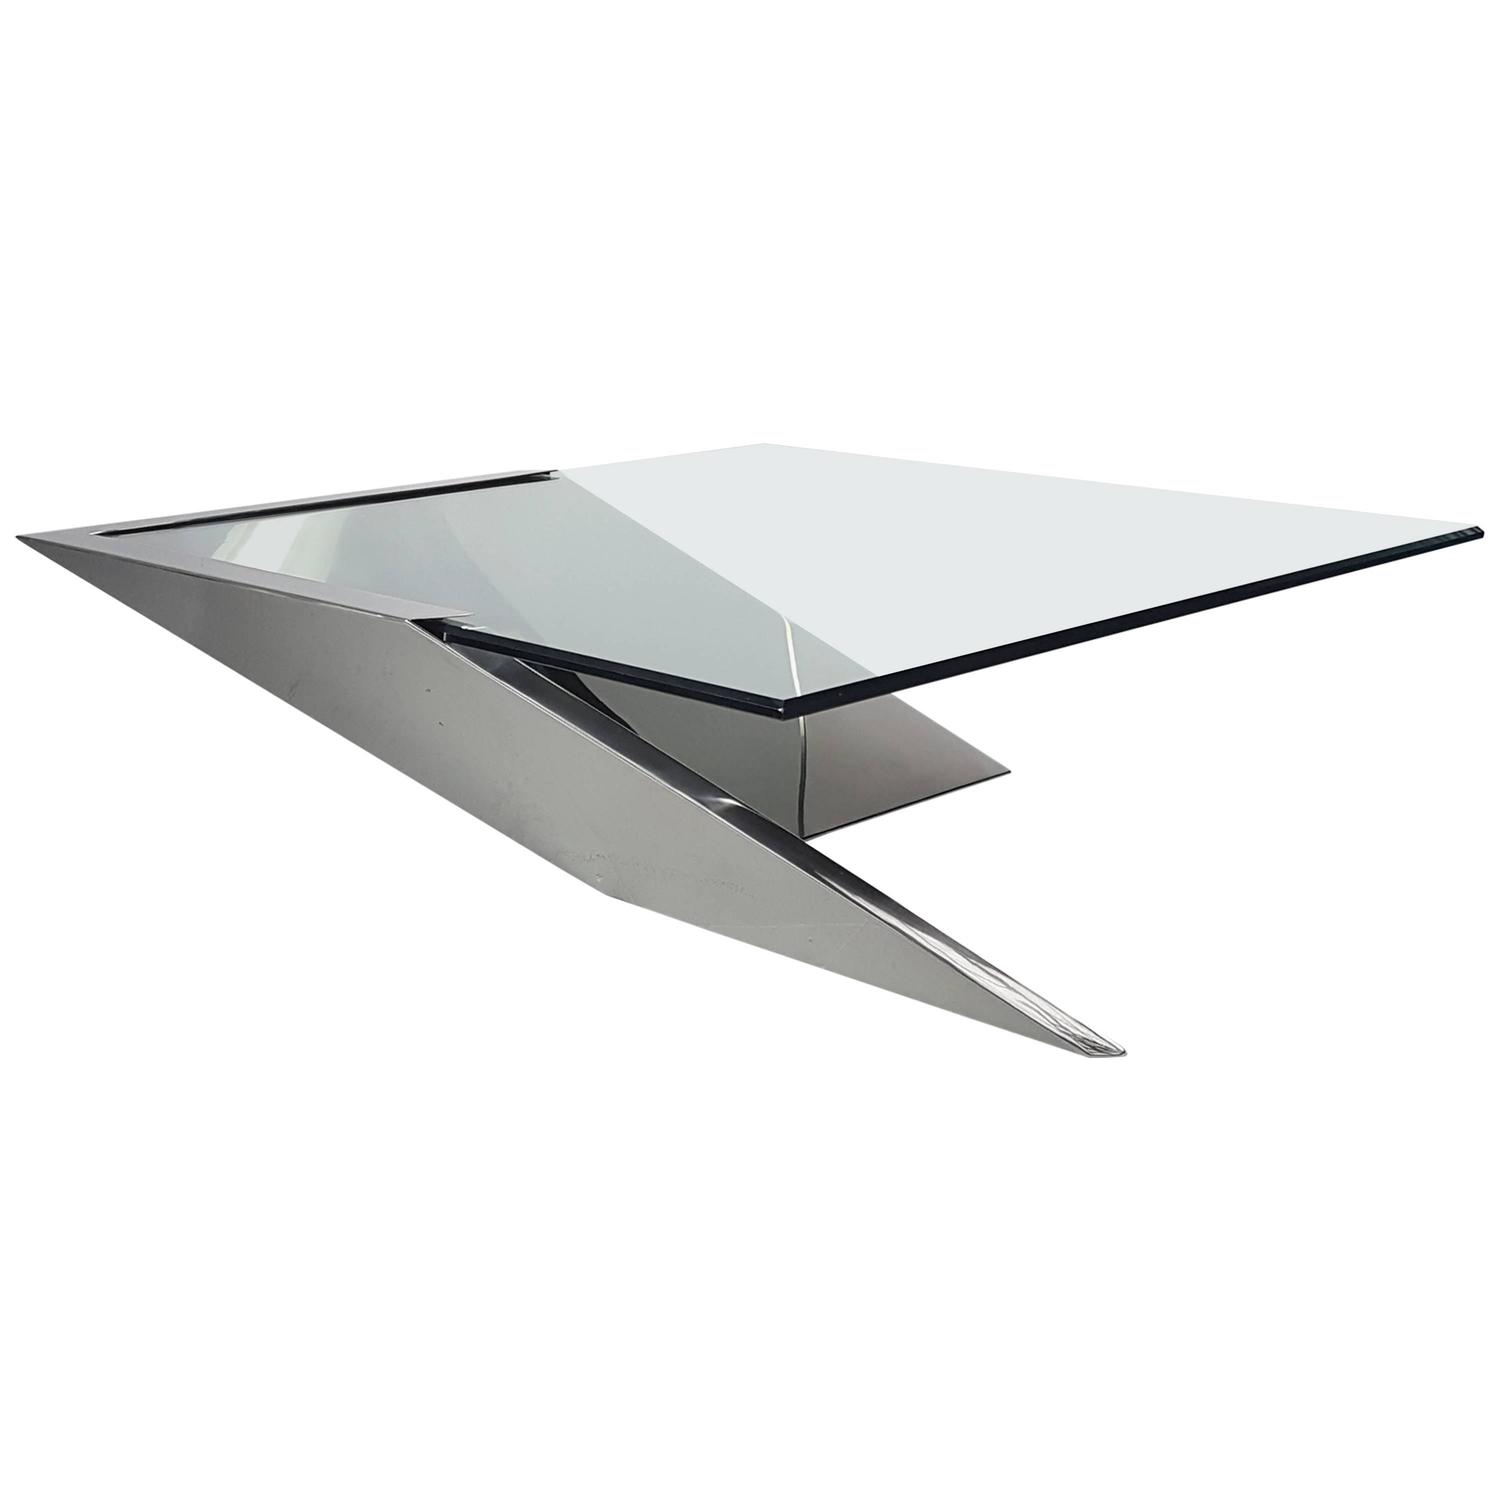 "Cantilevered Stainless Steel ""SMT"" Coffee Table by J Wade Beam"